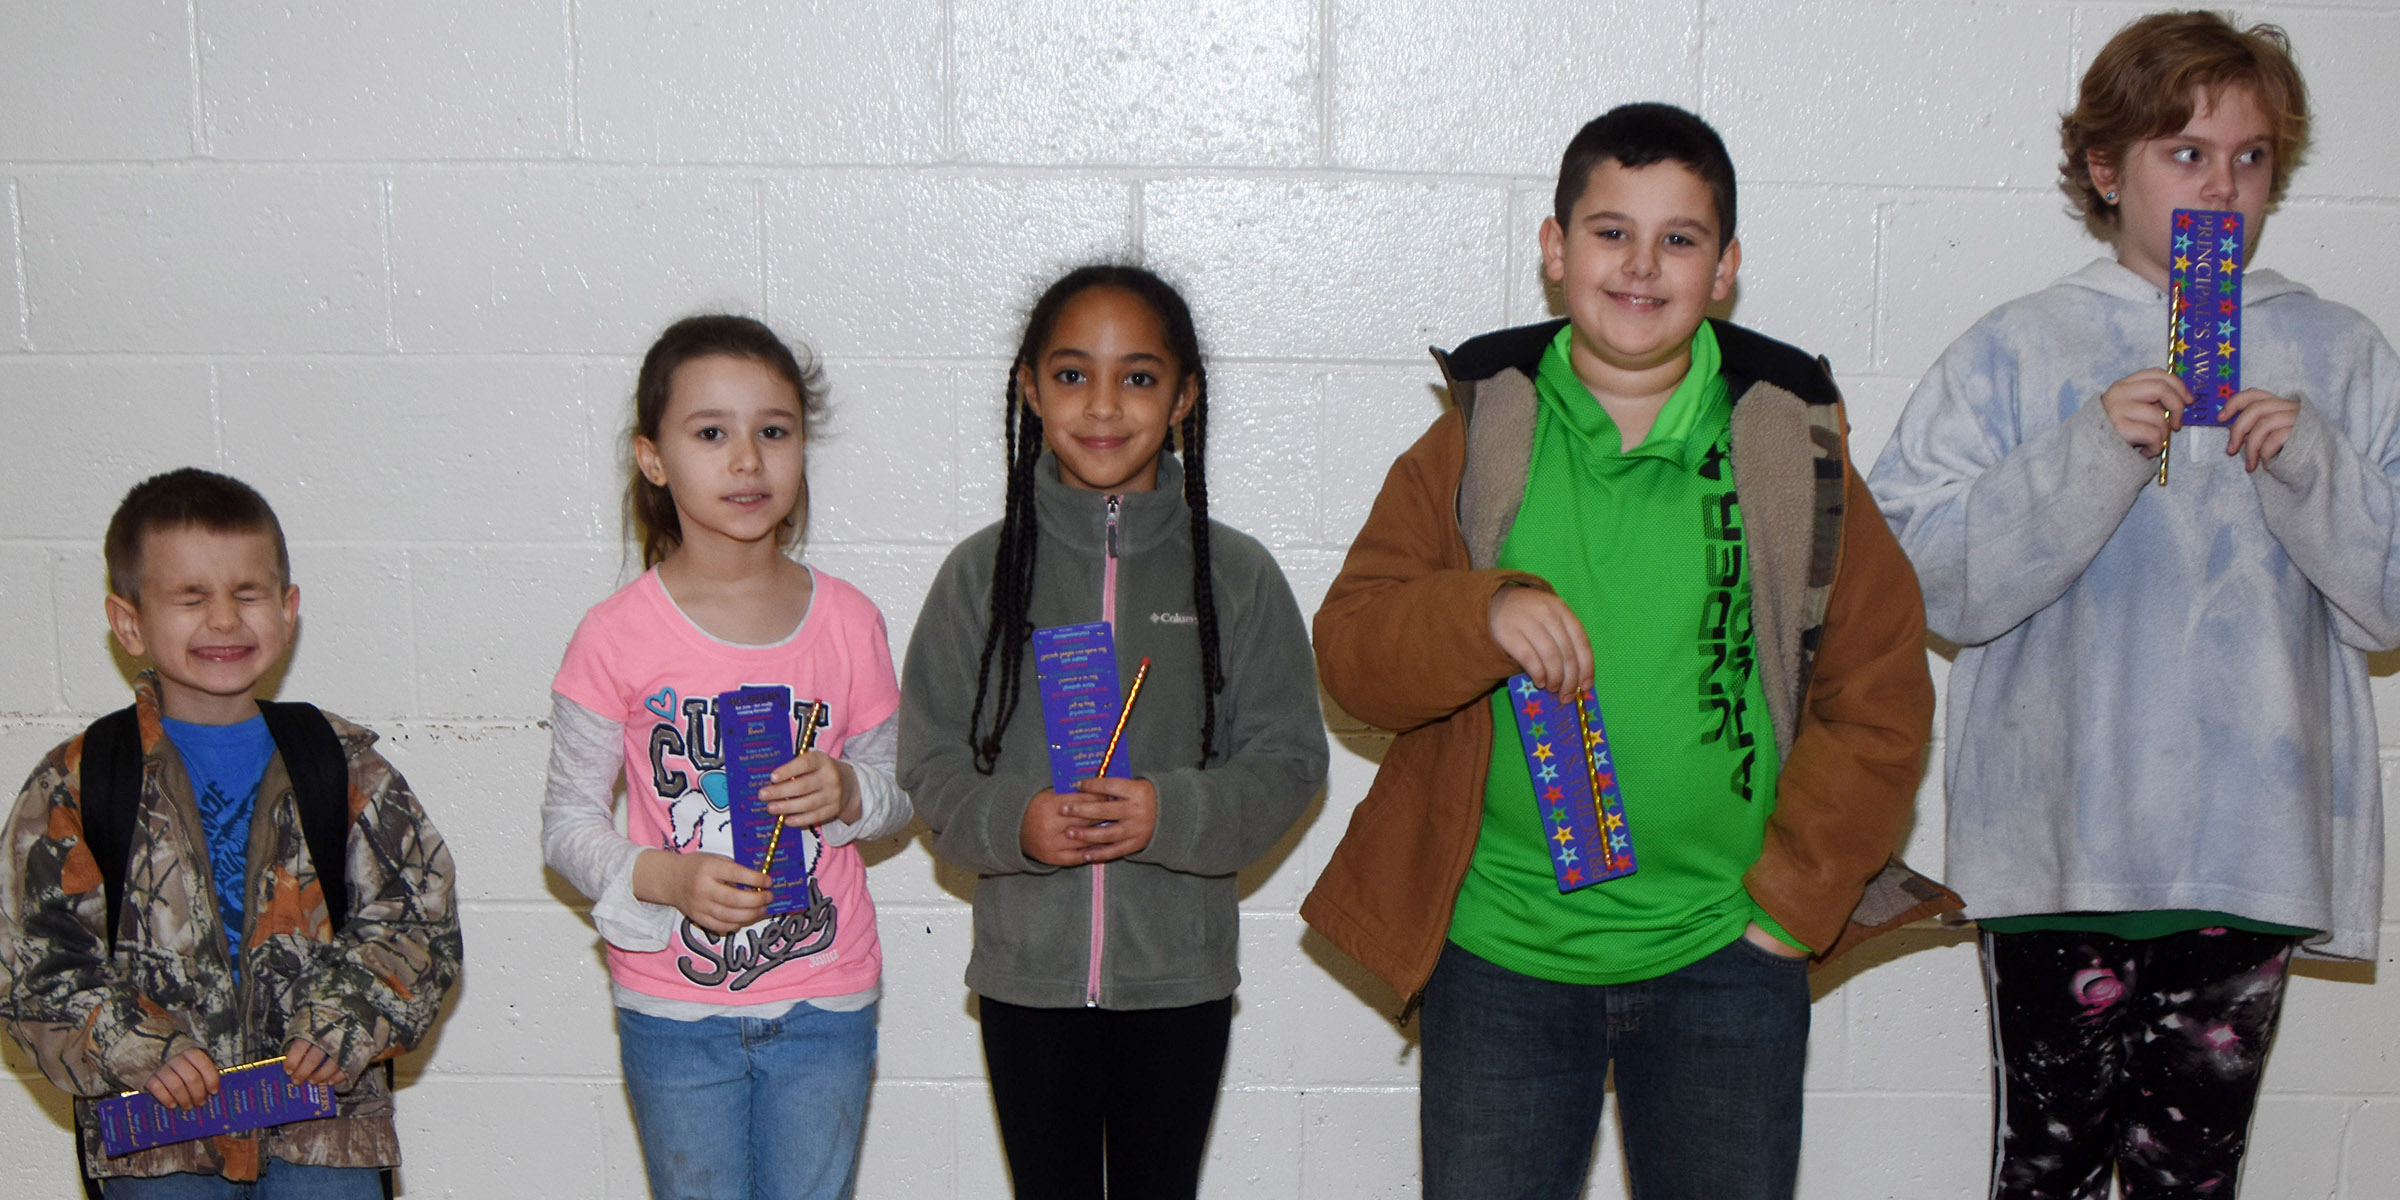 From left are first-grader Samuel Terry, second-grader Stella Newcomb, third-grader Essence Hunter, fourth-grader Damien Clark and fifth-grader Arianna Childers. Absent from the photo is kindergartener Connor Wise.